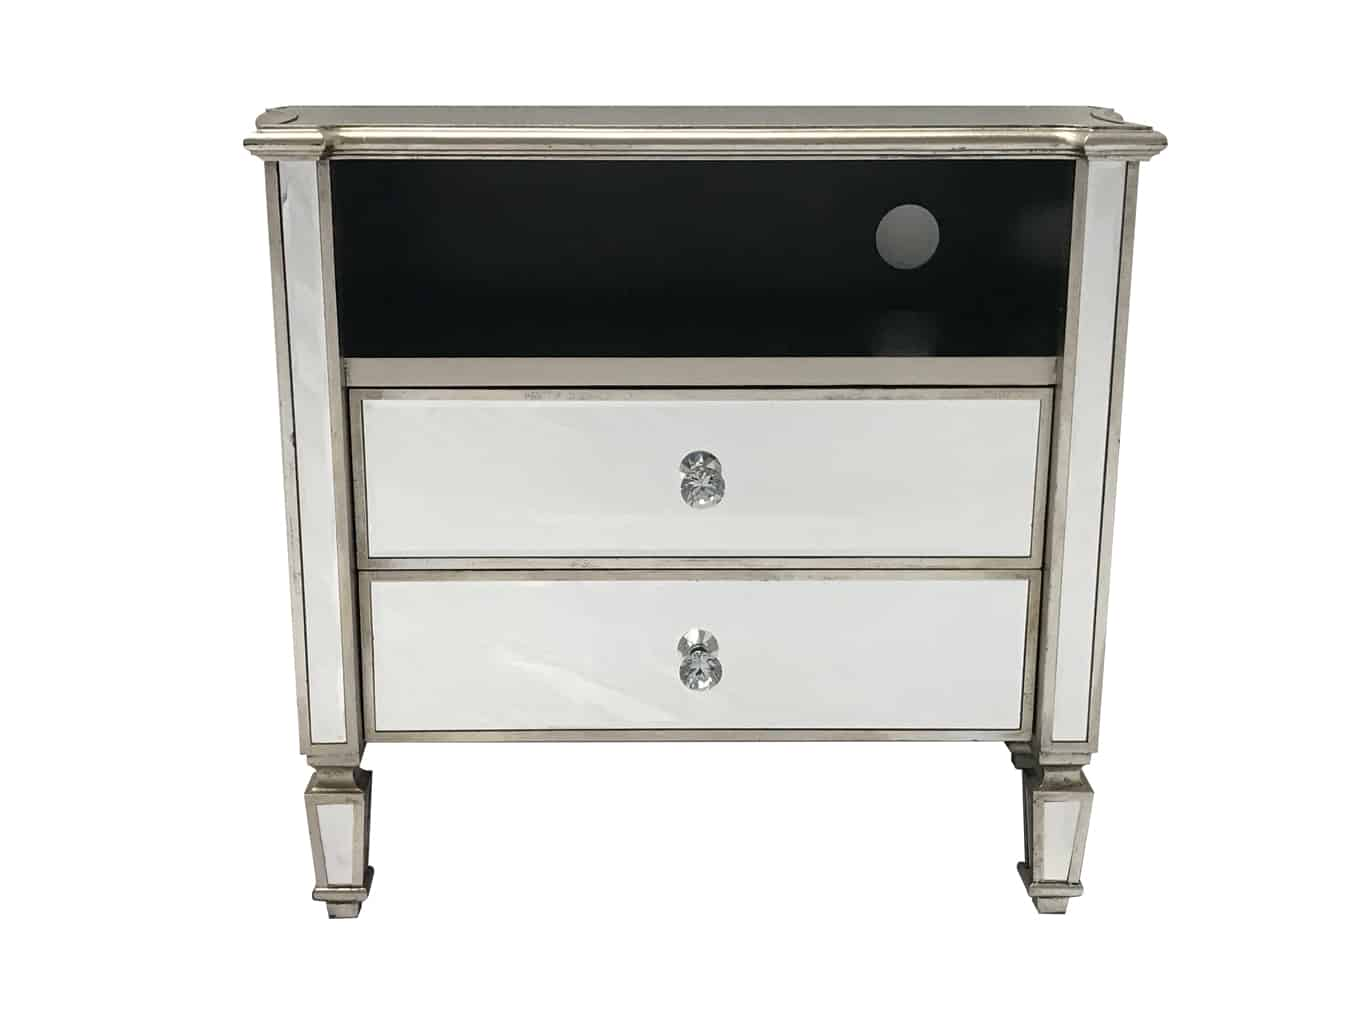 Marbella Mirrored TV Unit with 2 Drawers and a shelf